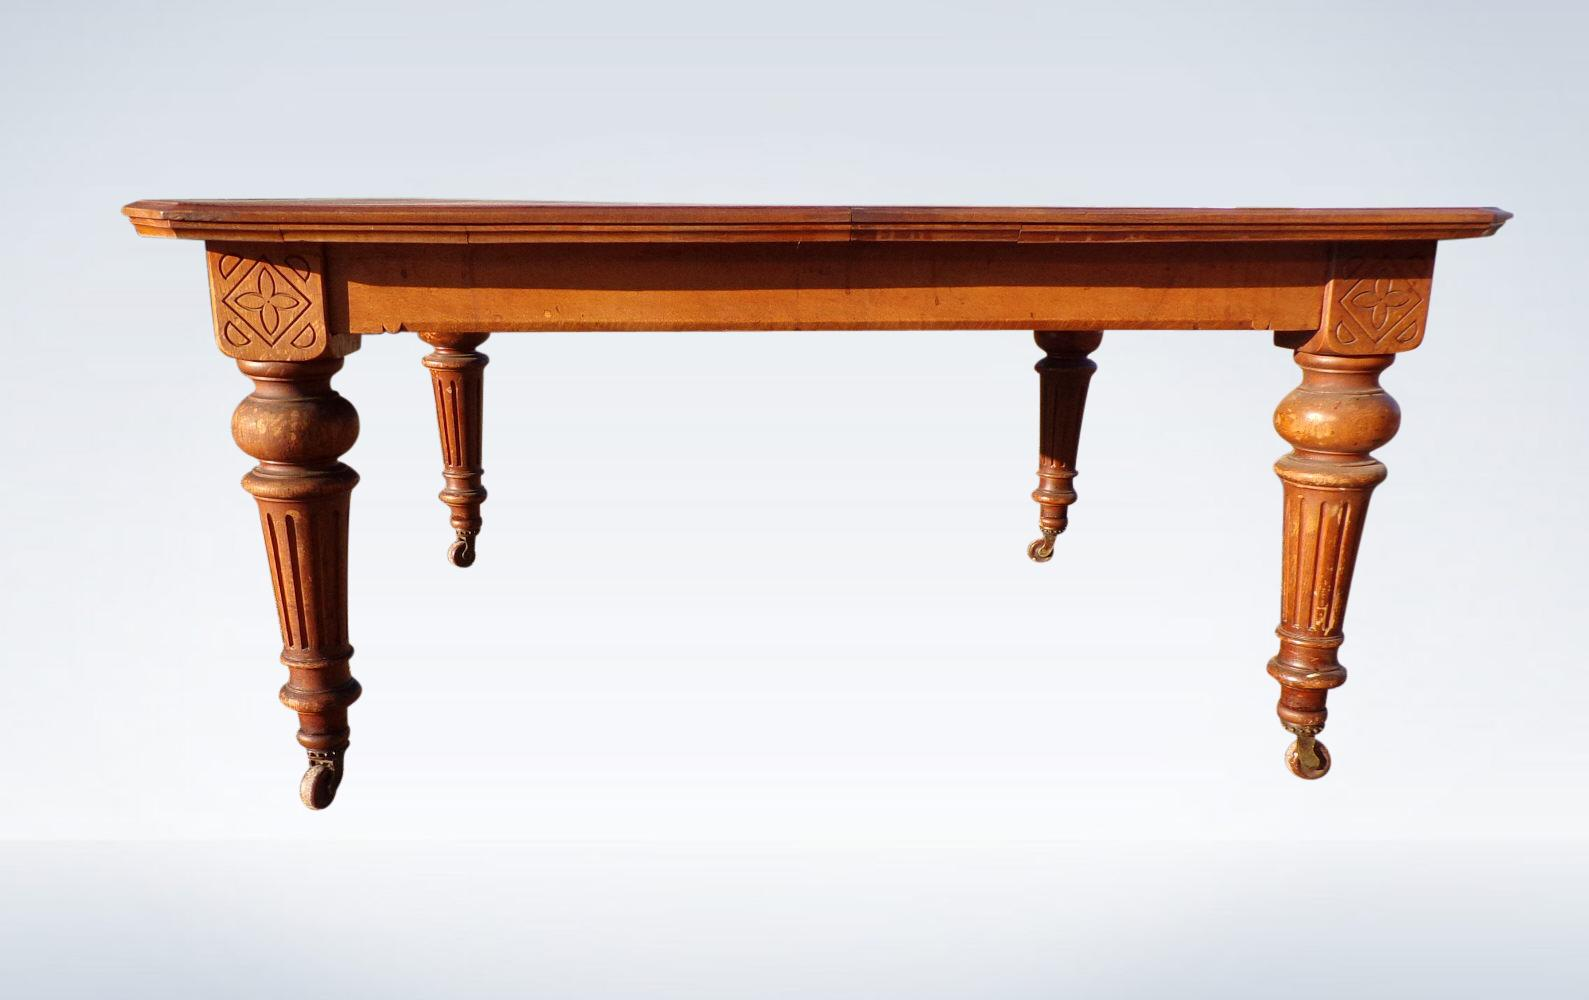 Large Antique Oak Extending Dining Table Victorian Period With Canted Corners